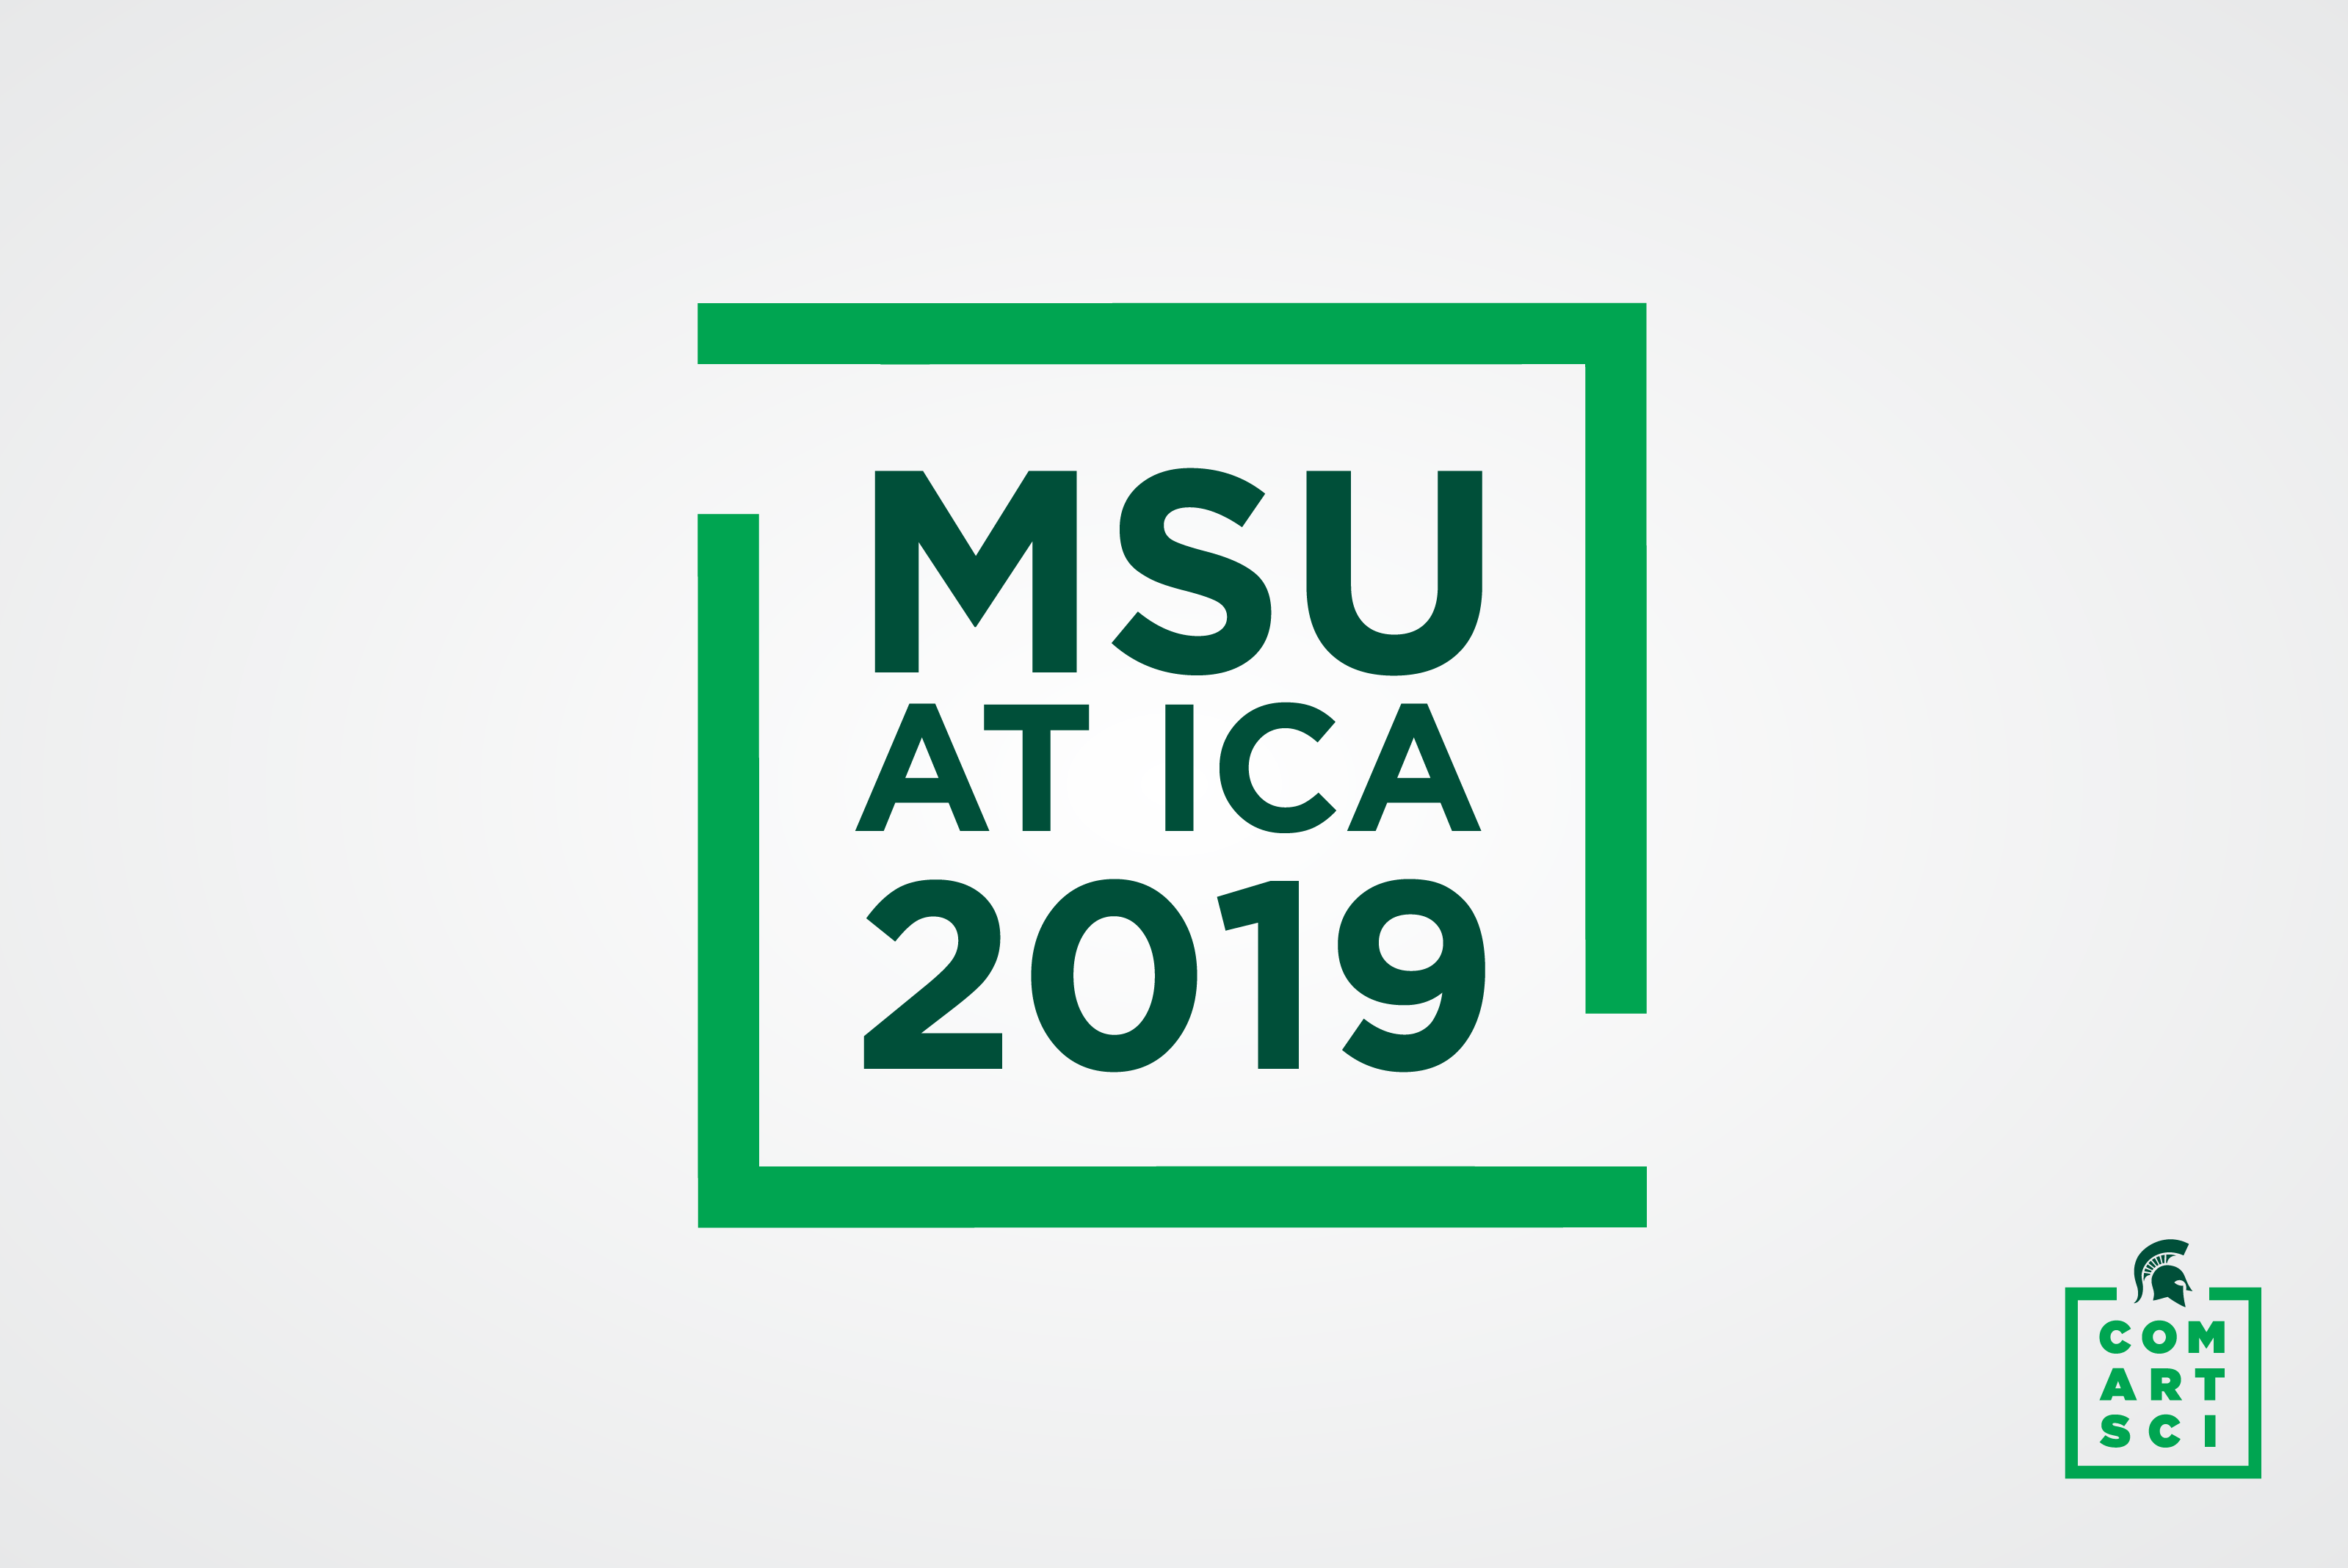 Graphic for MSU at ICA 2019